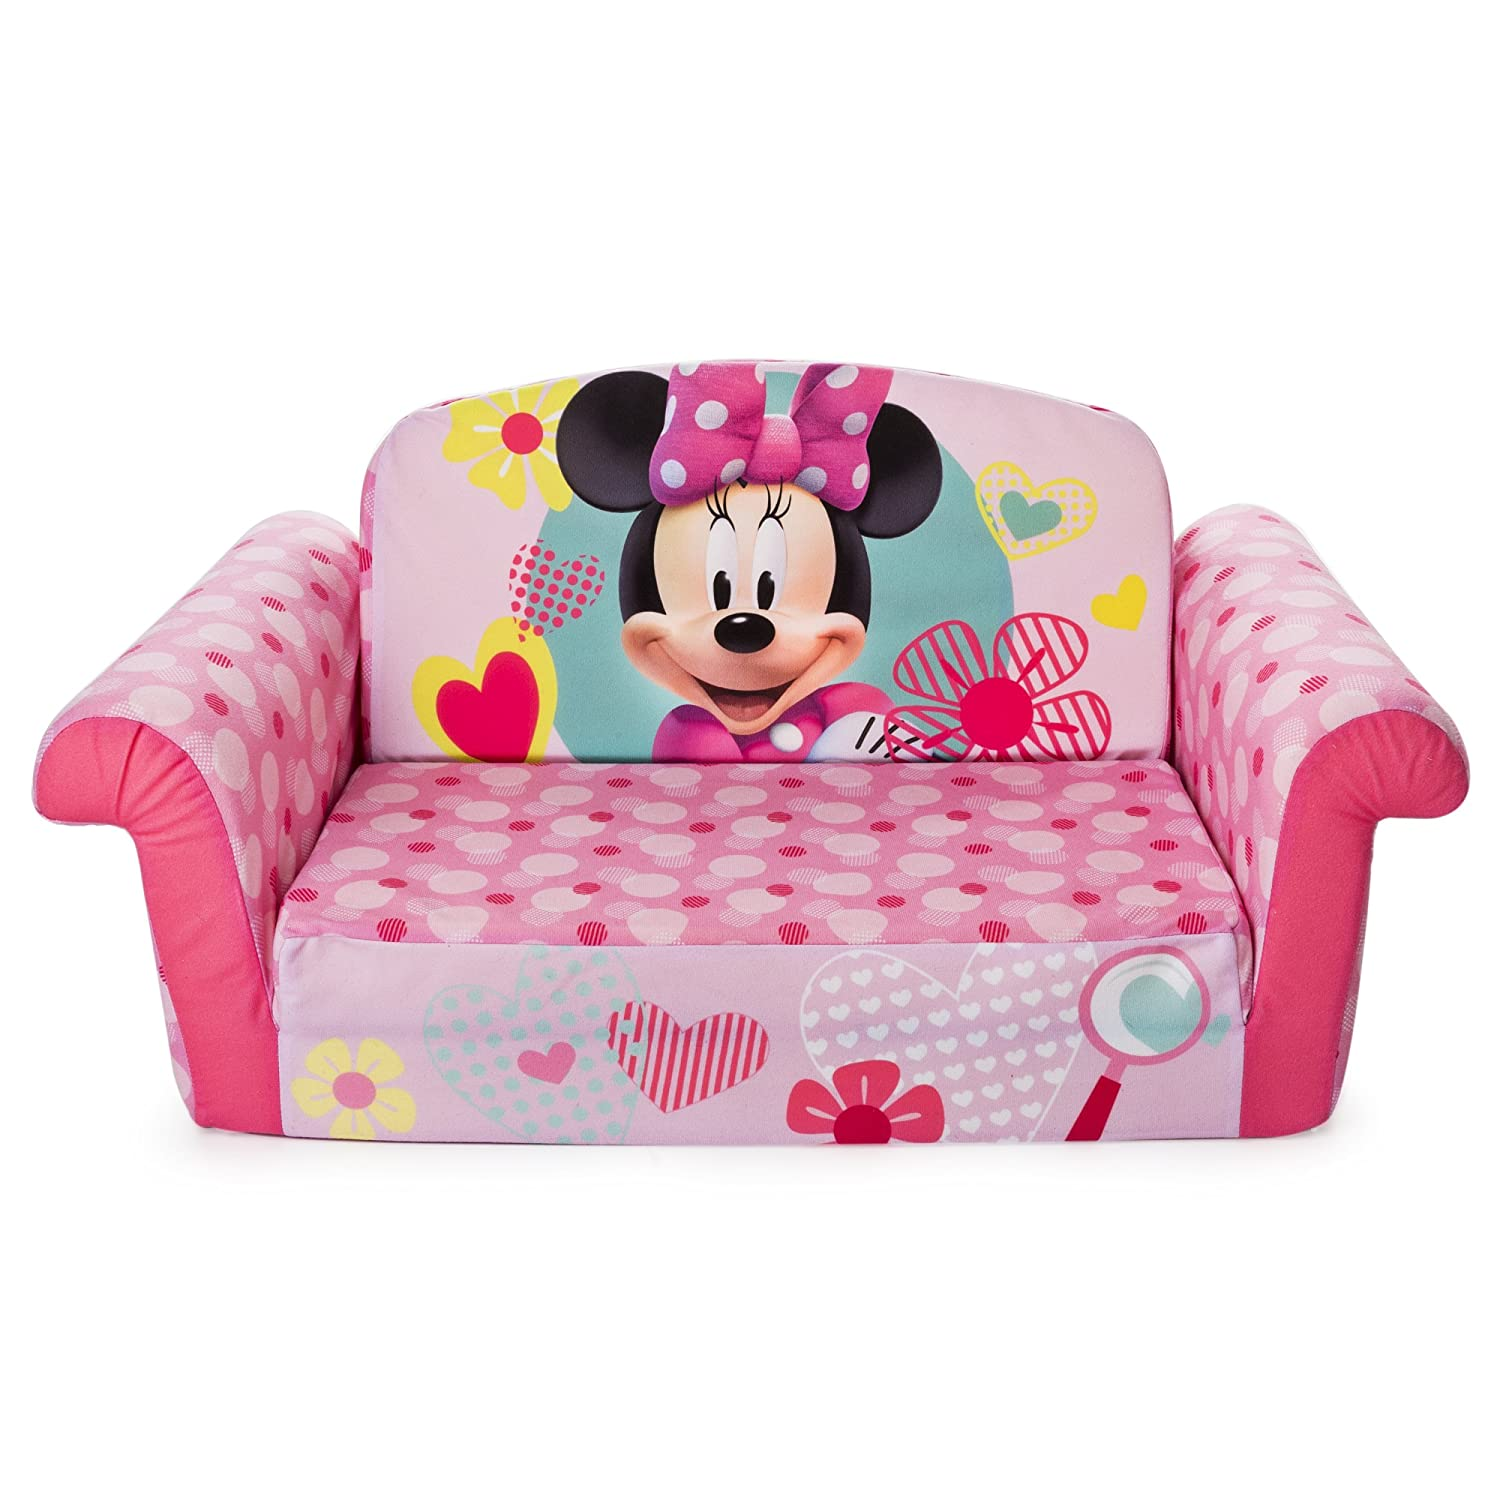 Marshmallow Furniture, Childrens 2 in 1 Flip Open Foam Sofa, Minnie Mouse, by Spin Master